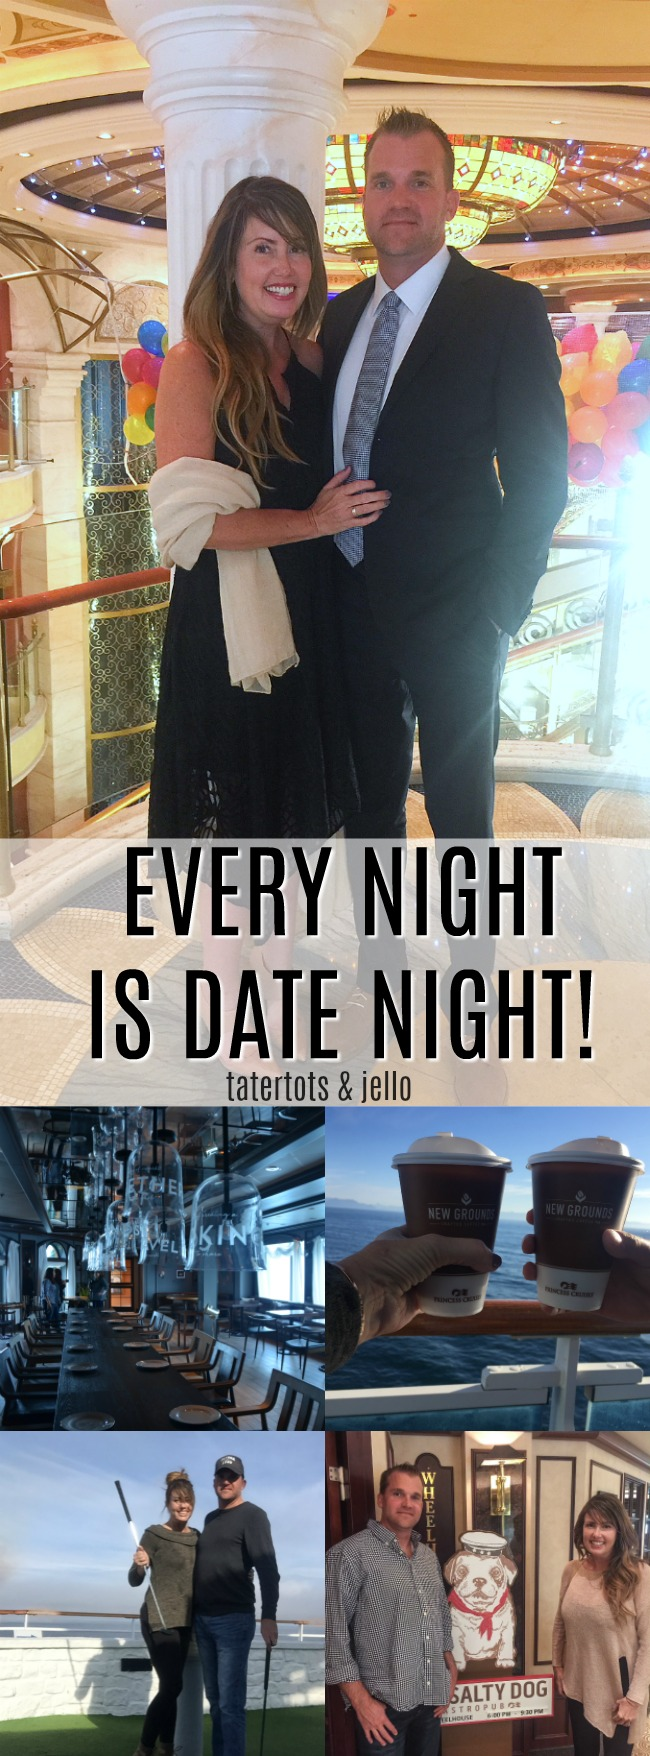 10 reasons to go on a romantic alaskan cruise - every night is date night